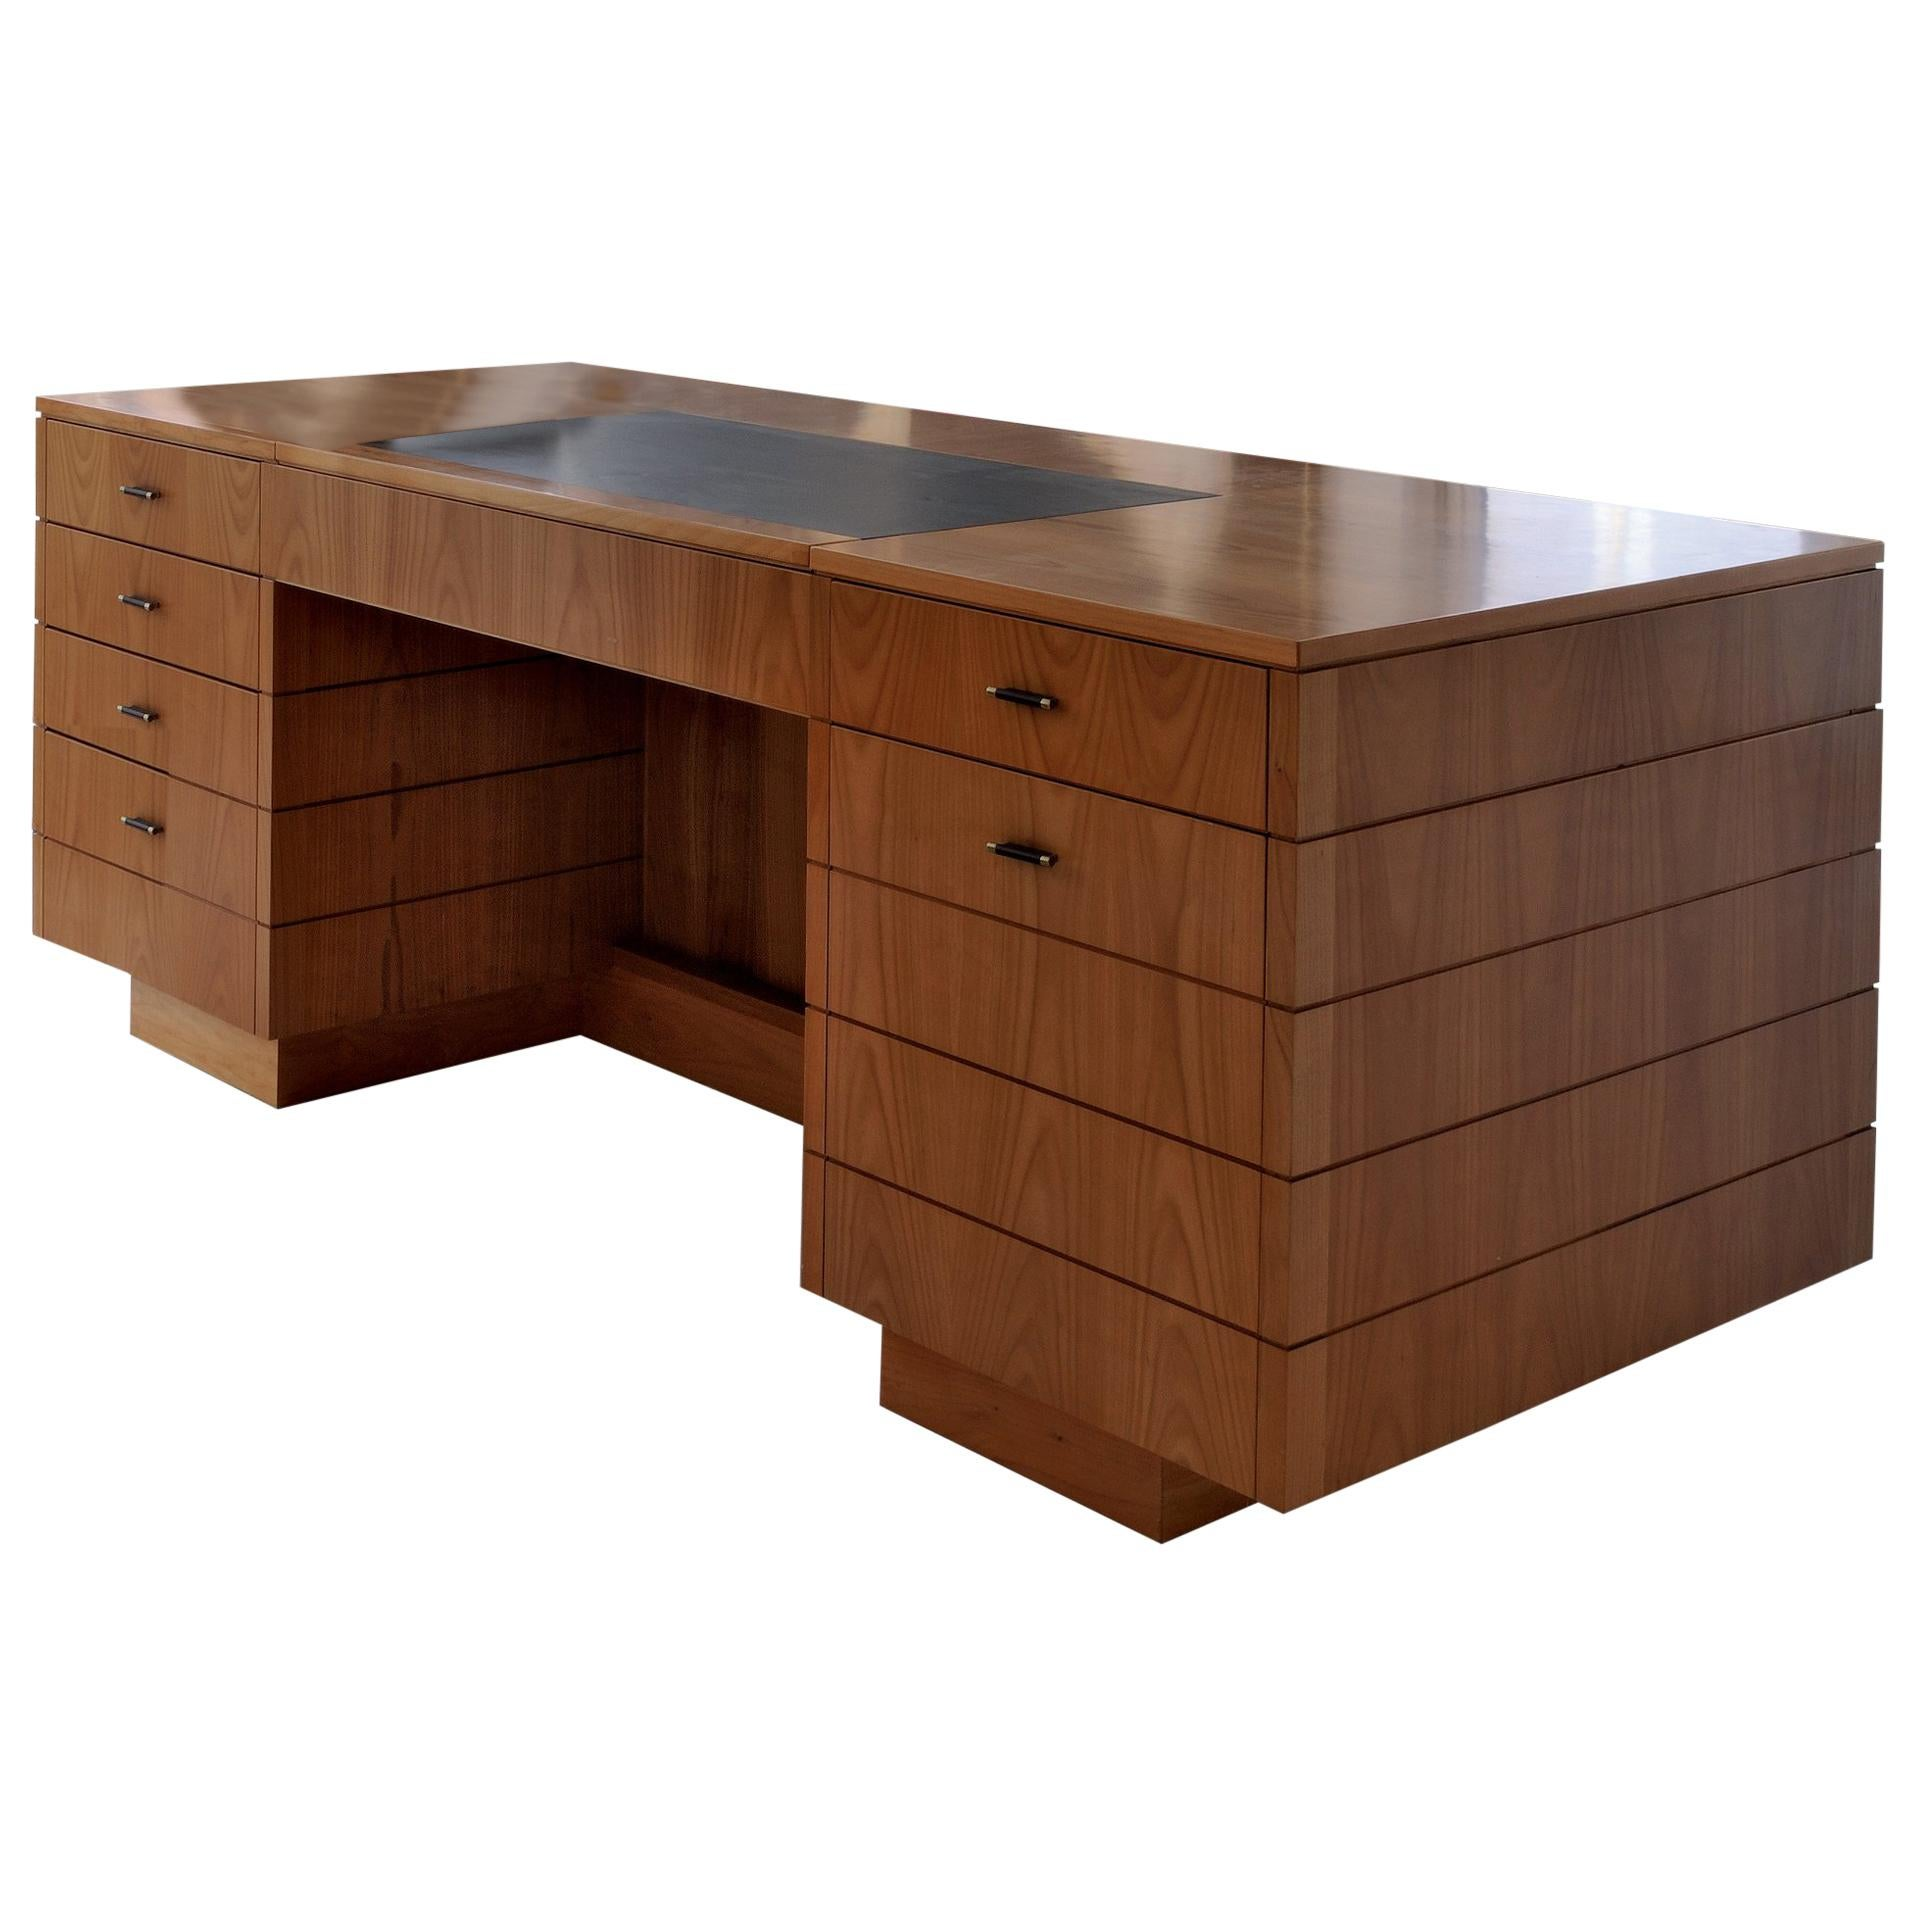 '900 Style Wooden Desk in Cherry Wood with Leather Top and Drawers